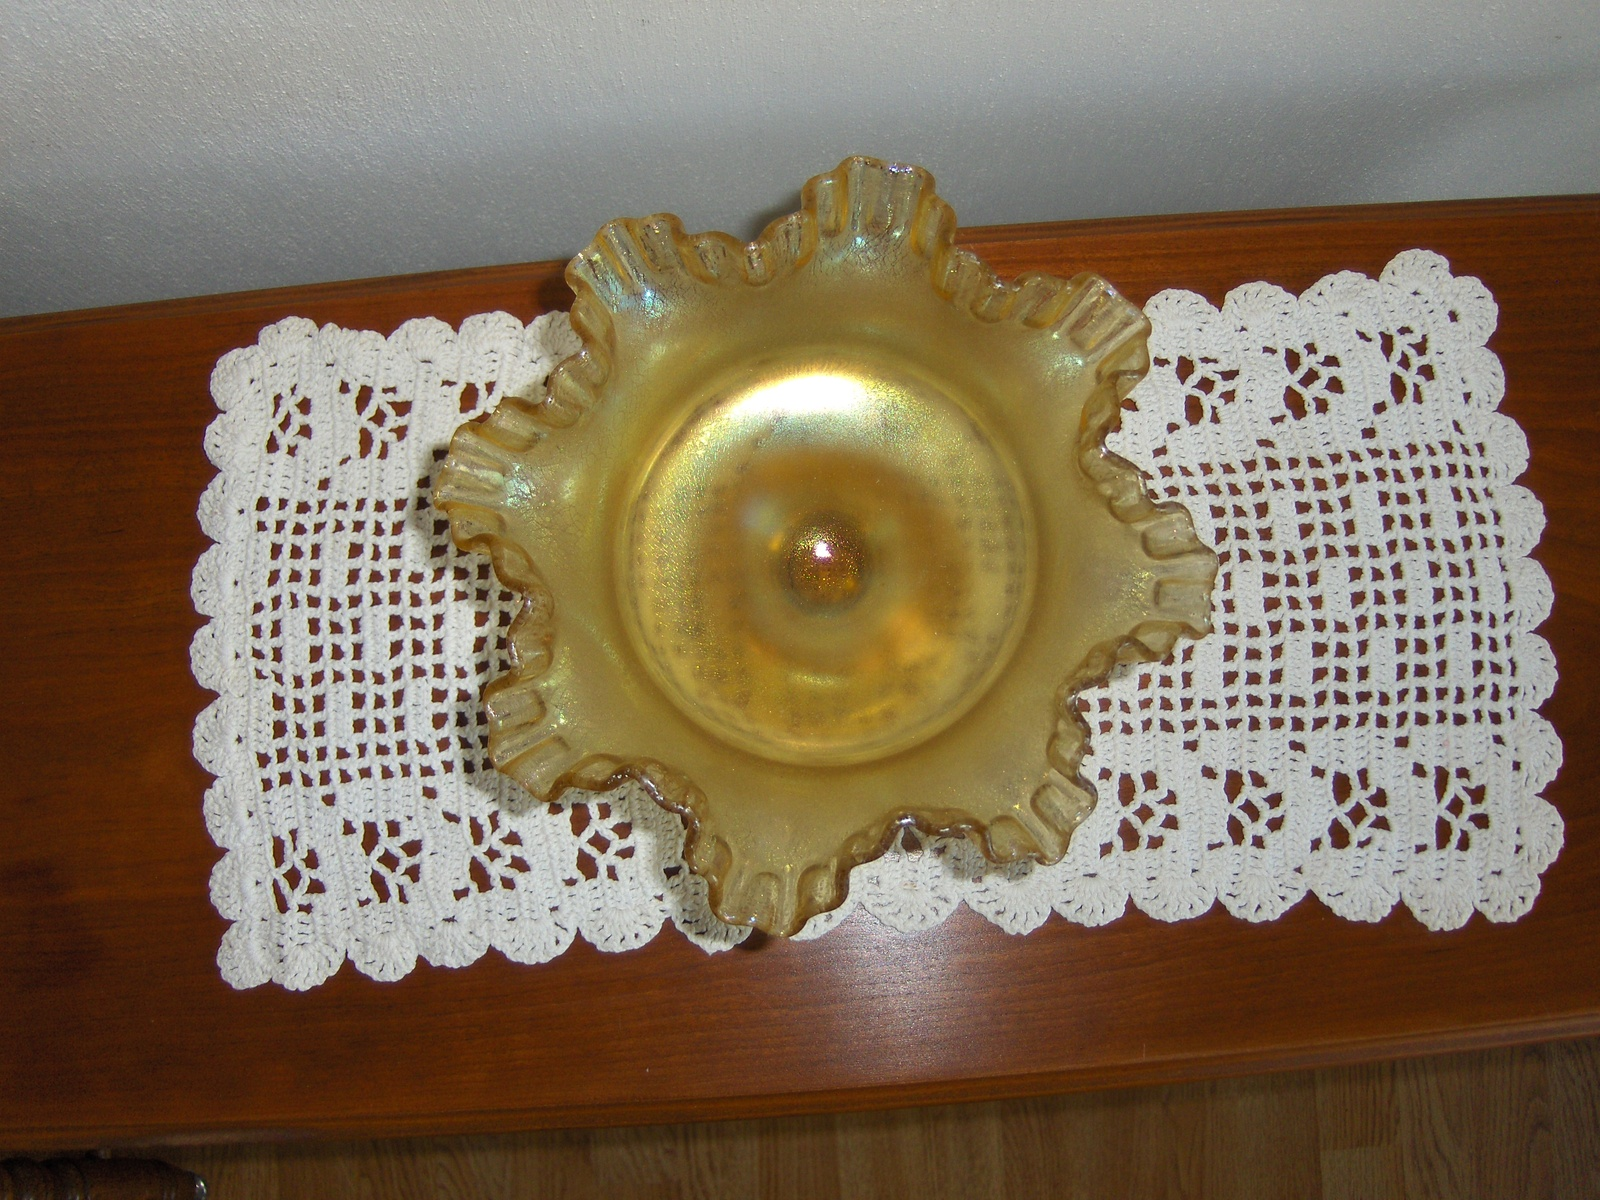 Fenton Ruffled Edge Pedestal Candy Dish Bowl Marigold Carnival Glass Frosted